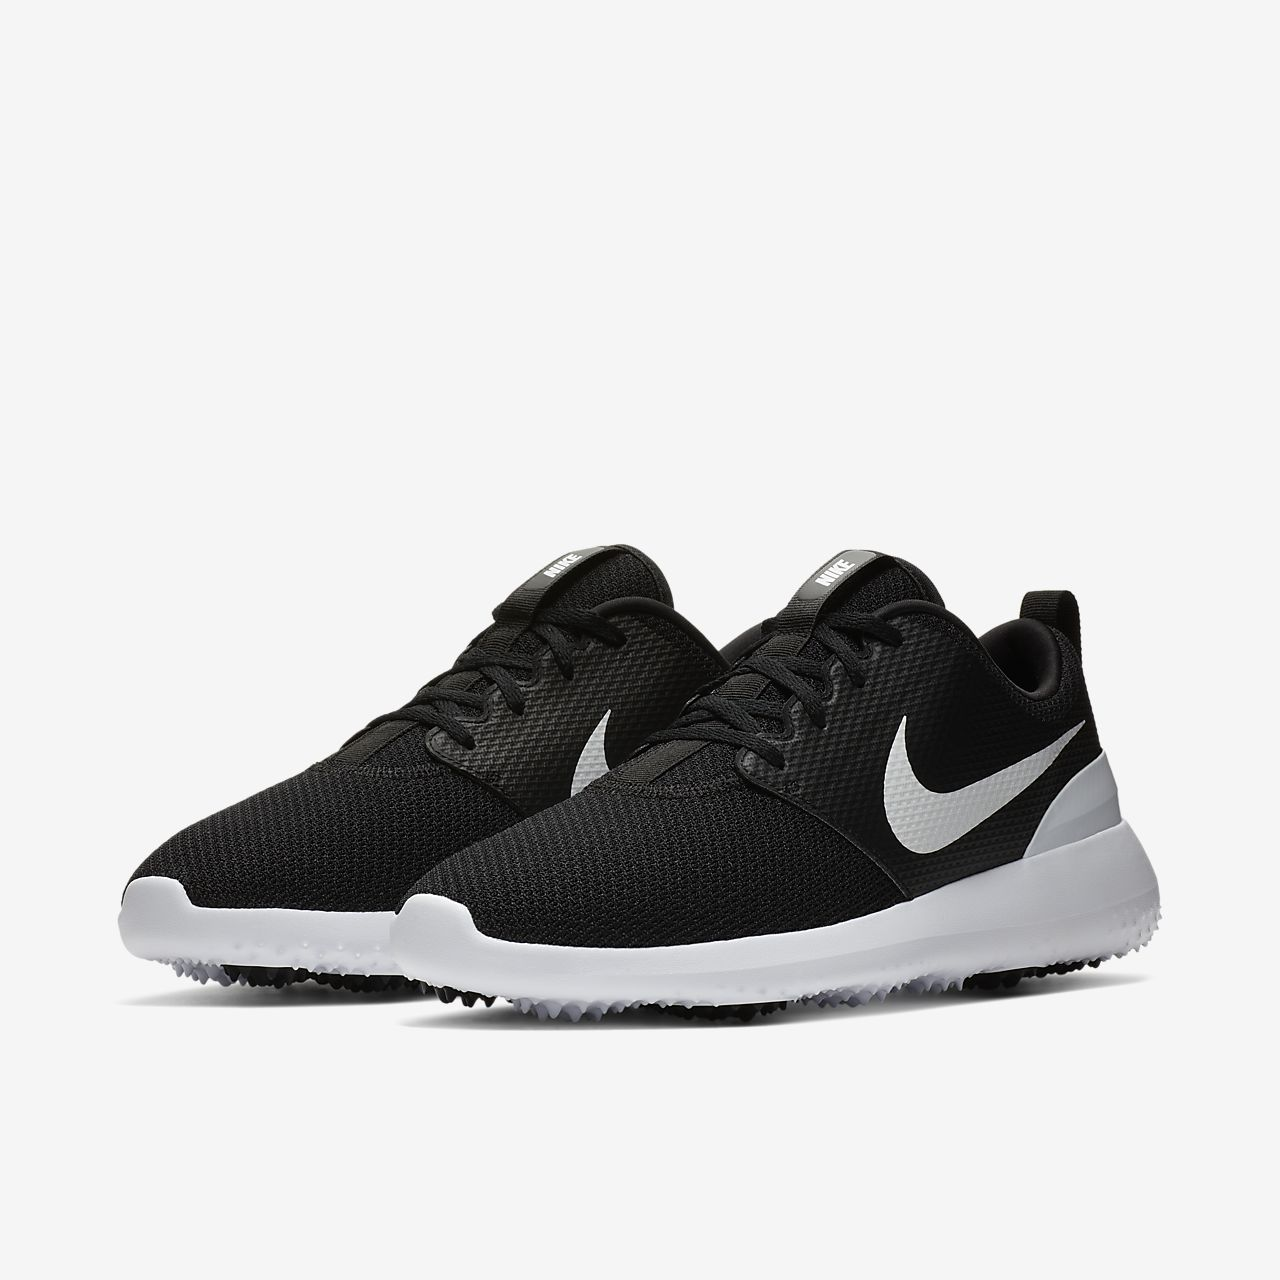 the latest 742ae 9823c ... Nike Roshe G Mens Golf Shoe